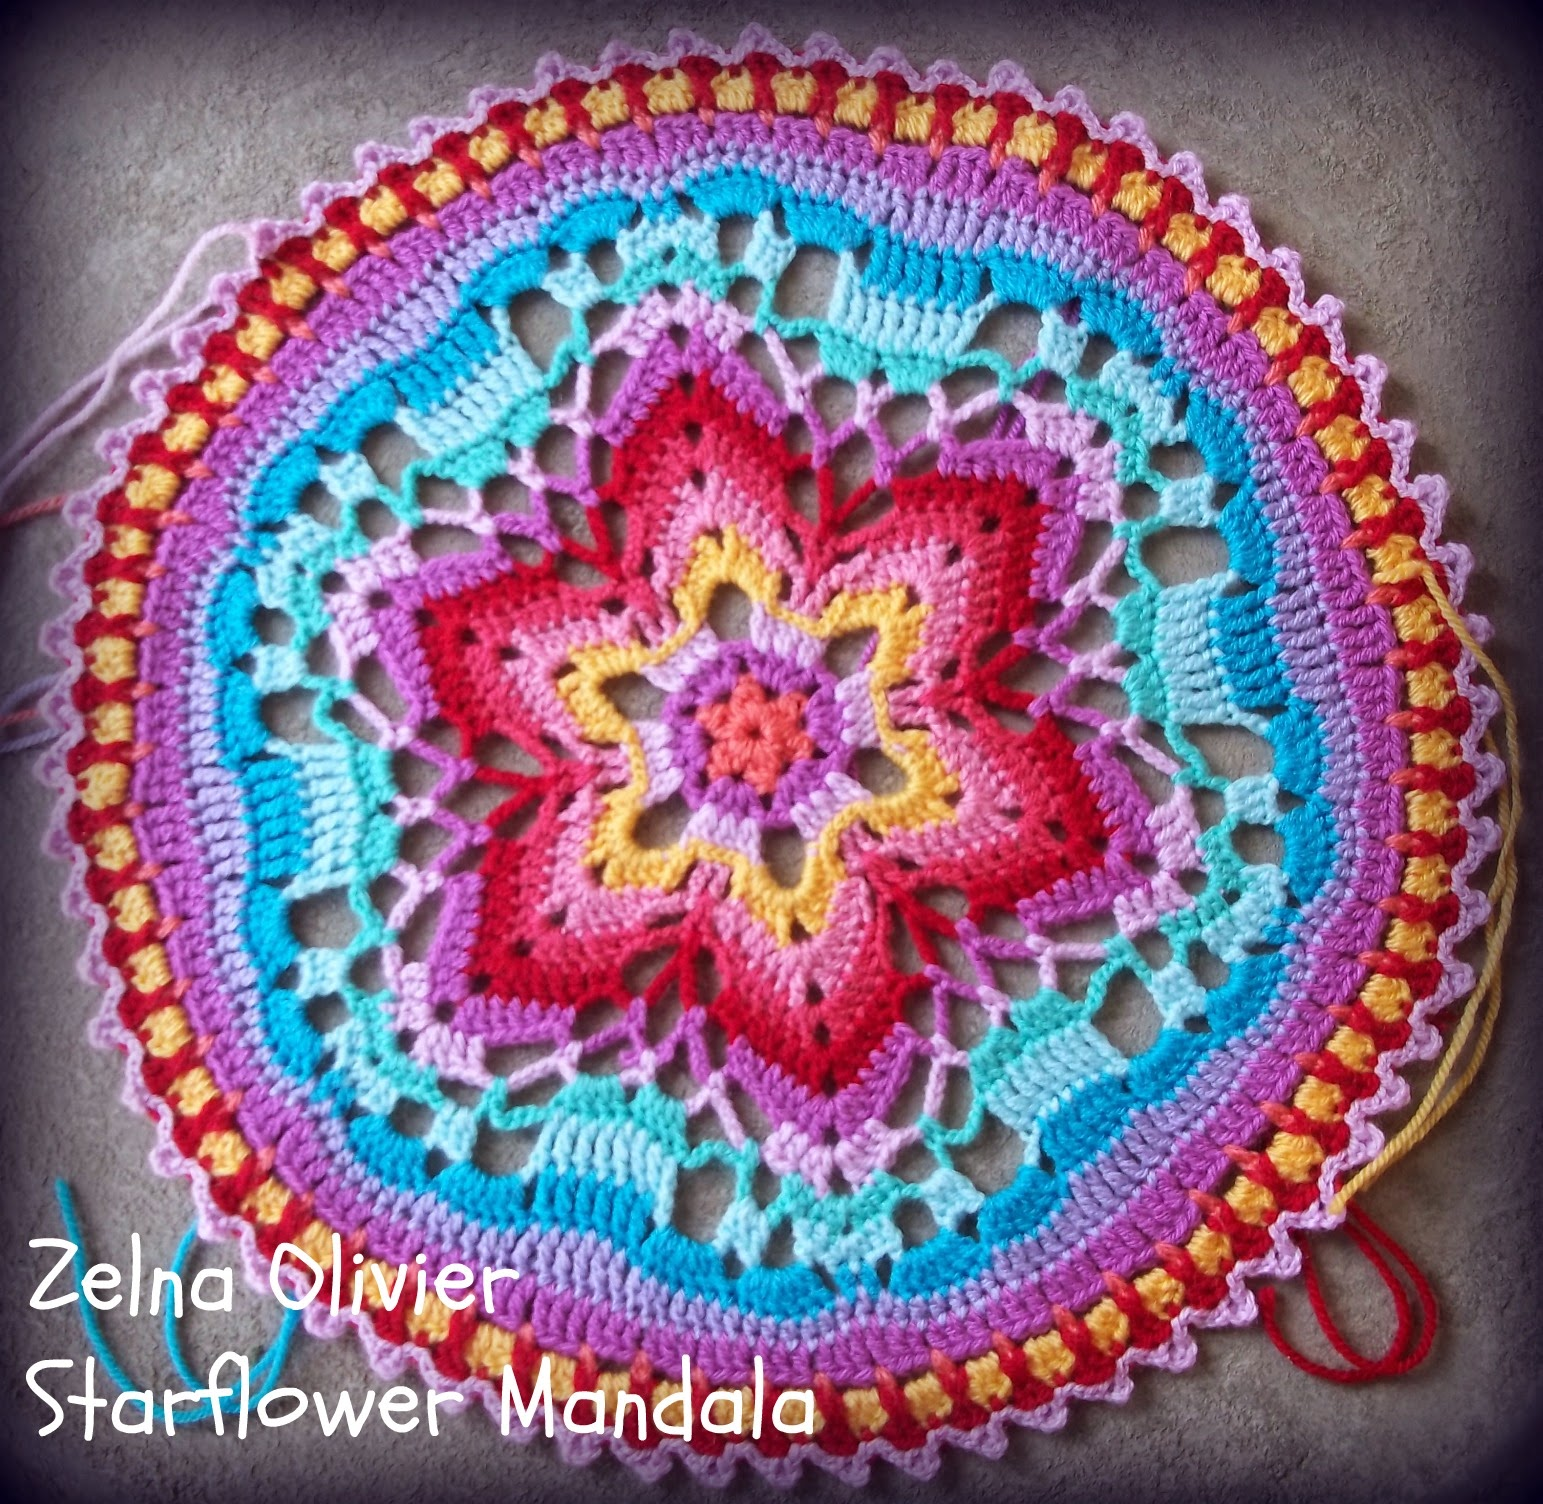 Zooty Owl\'s Crafty Blog: Starflower Mandala: Pattern